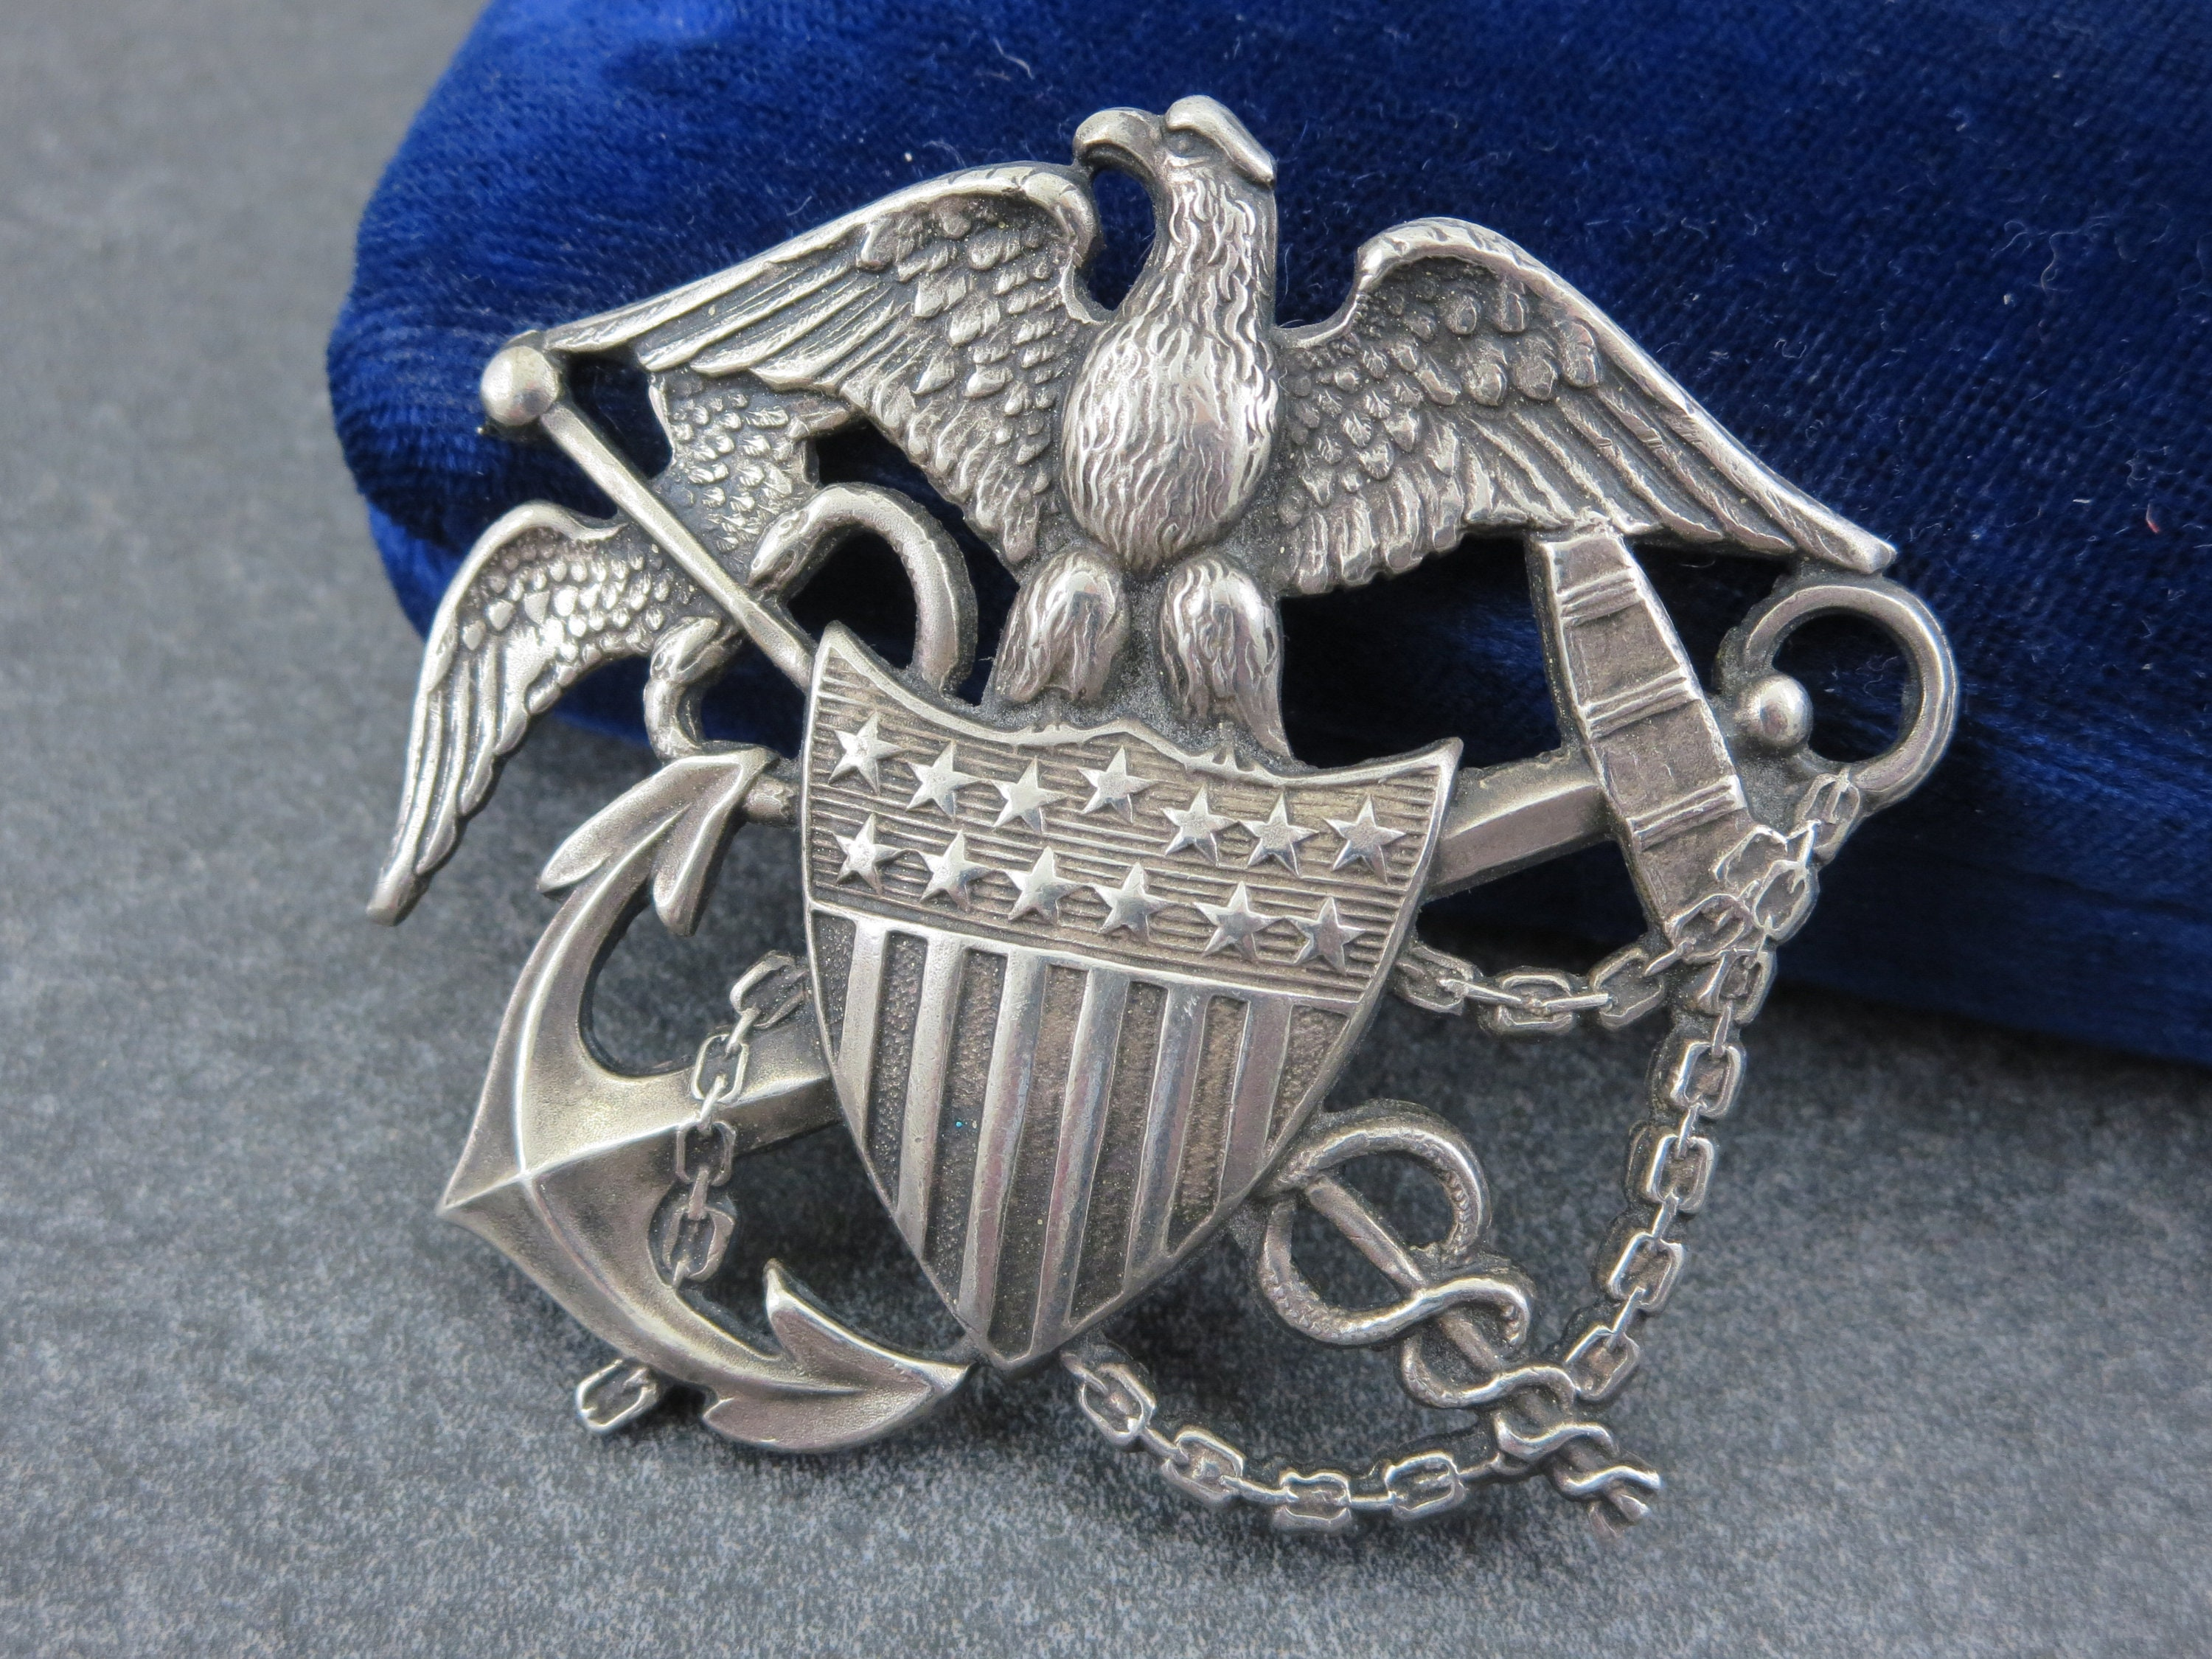 Silver Eagle Military Brooch WWII Nurse Cadet Corps Sterling Silver Hat Badge Blackinton US Public Health Service